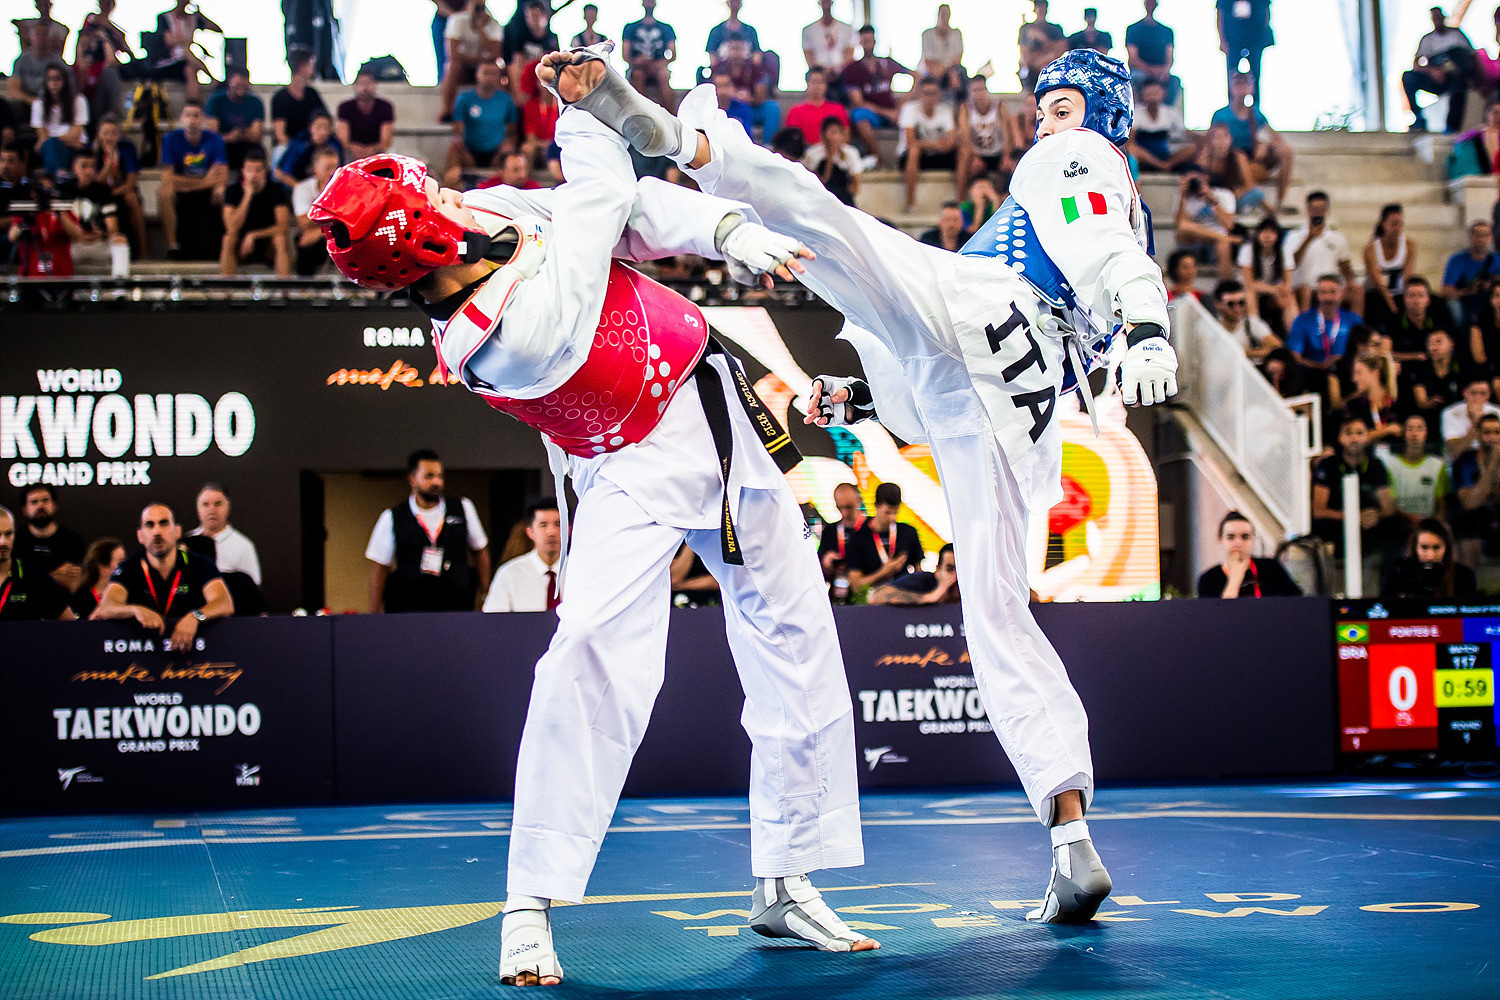 Italy's Simone Alessio, right, is one of four gold medallists from last month's Manchester 2019 World Taekwondo Championships that will compete in the opening WT Grand Prix Series event of the year which starts in Rome tomorrow ©WT